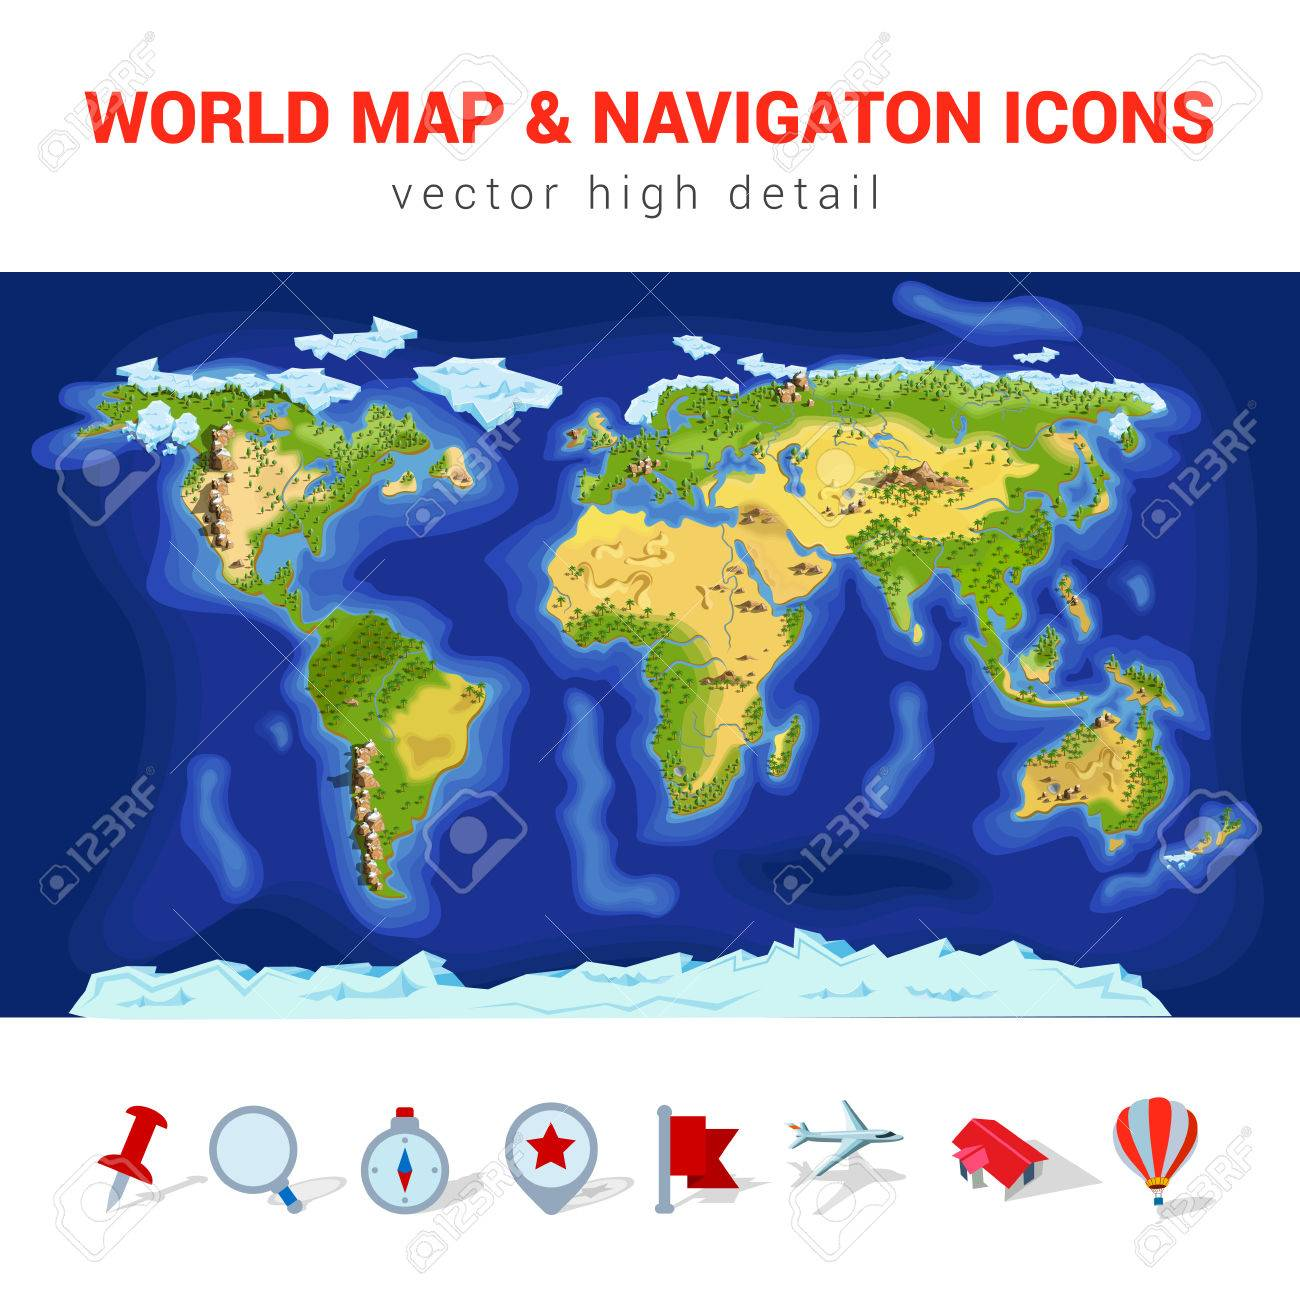 Navigation World Map.World Map High Detail Vector Navigation Icon Set America Asia